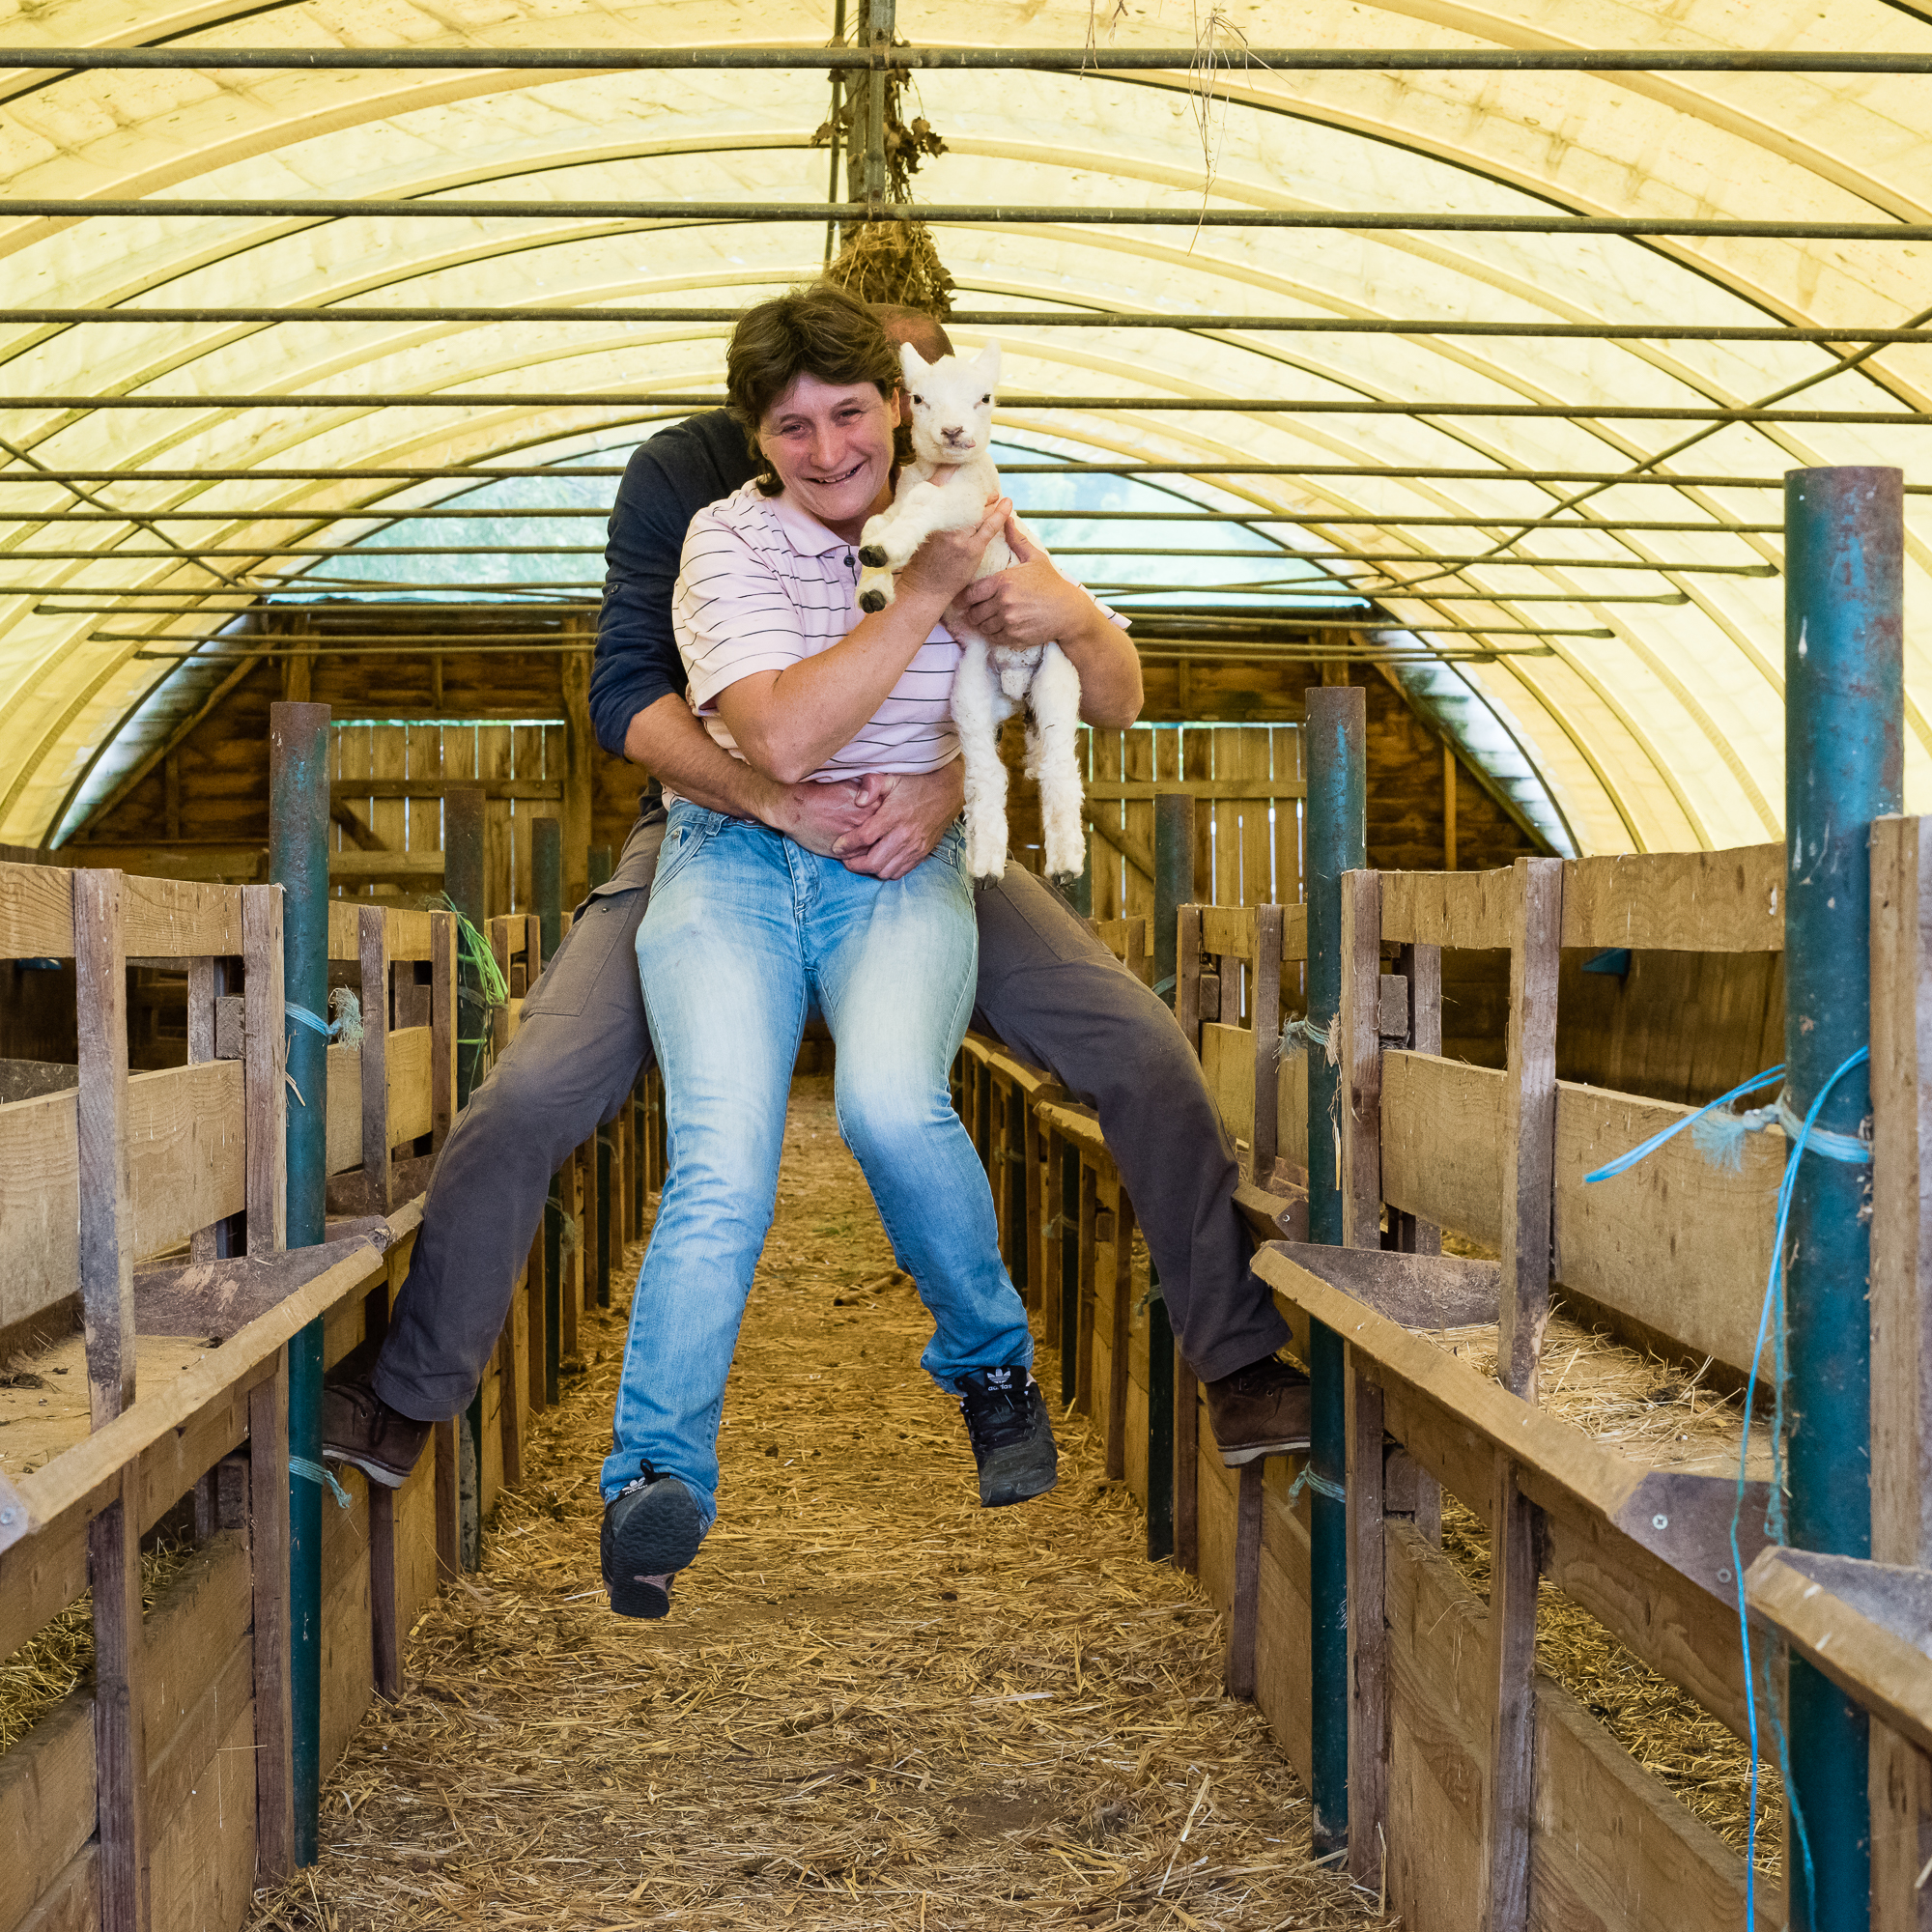 Agricultrices - Fabienne